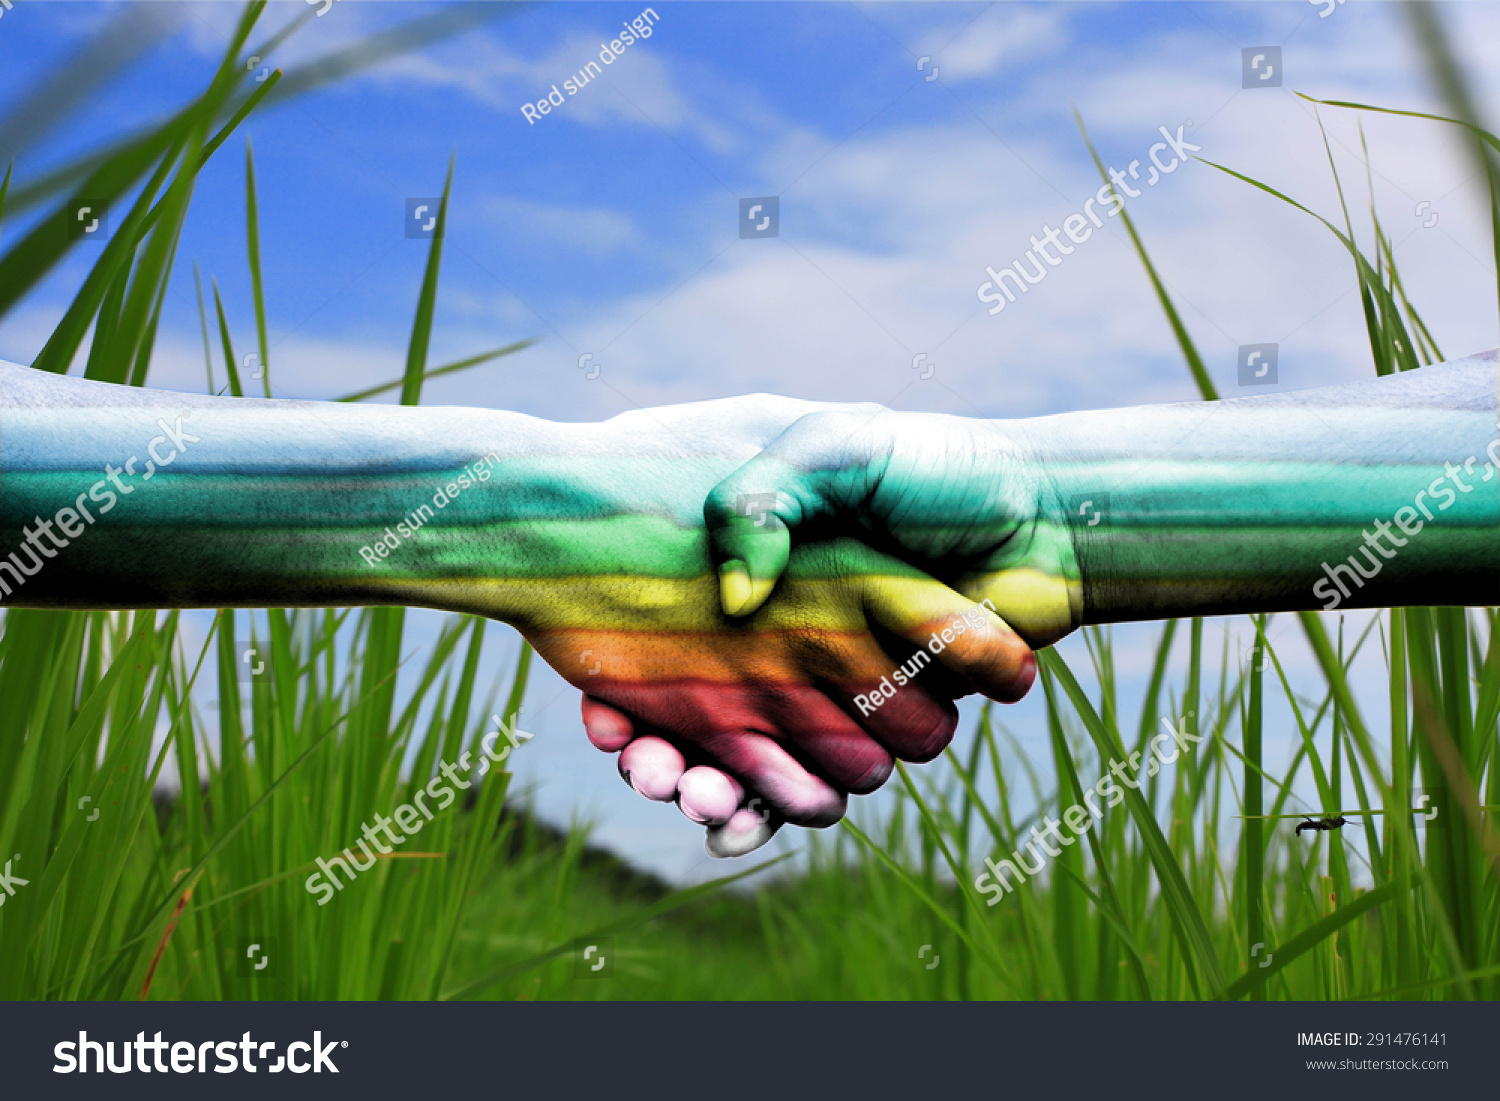 Royalty Free The Touch Of The Hand Shows The Love 291476141 Stock